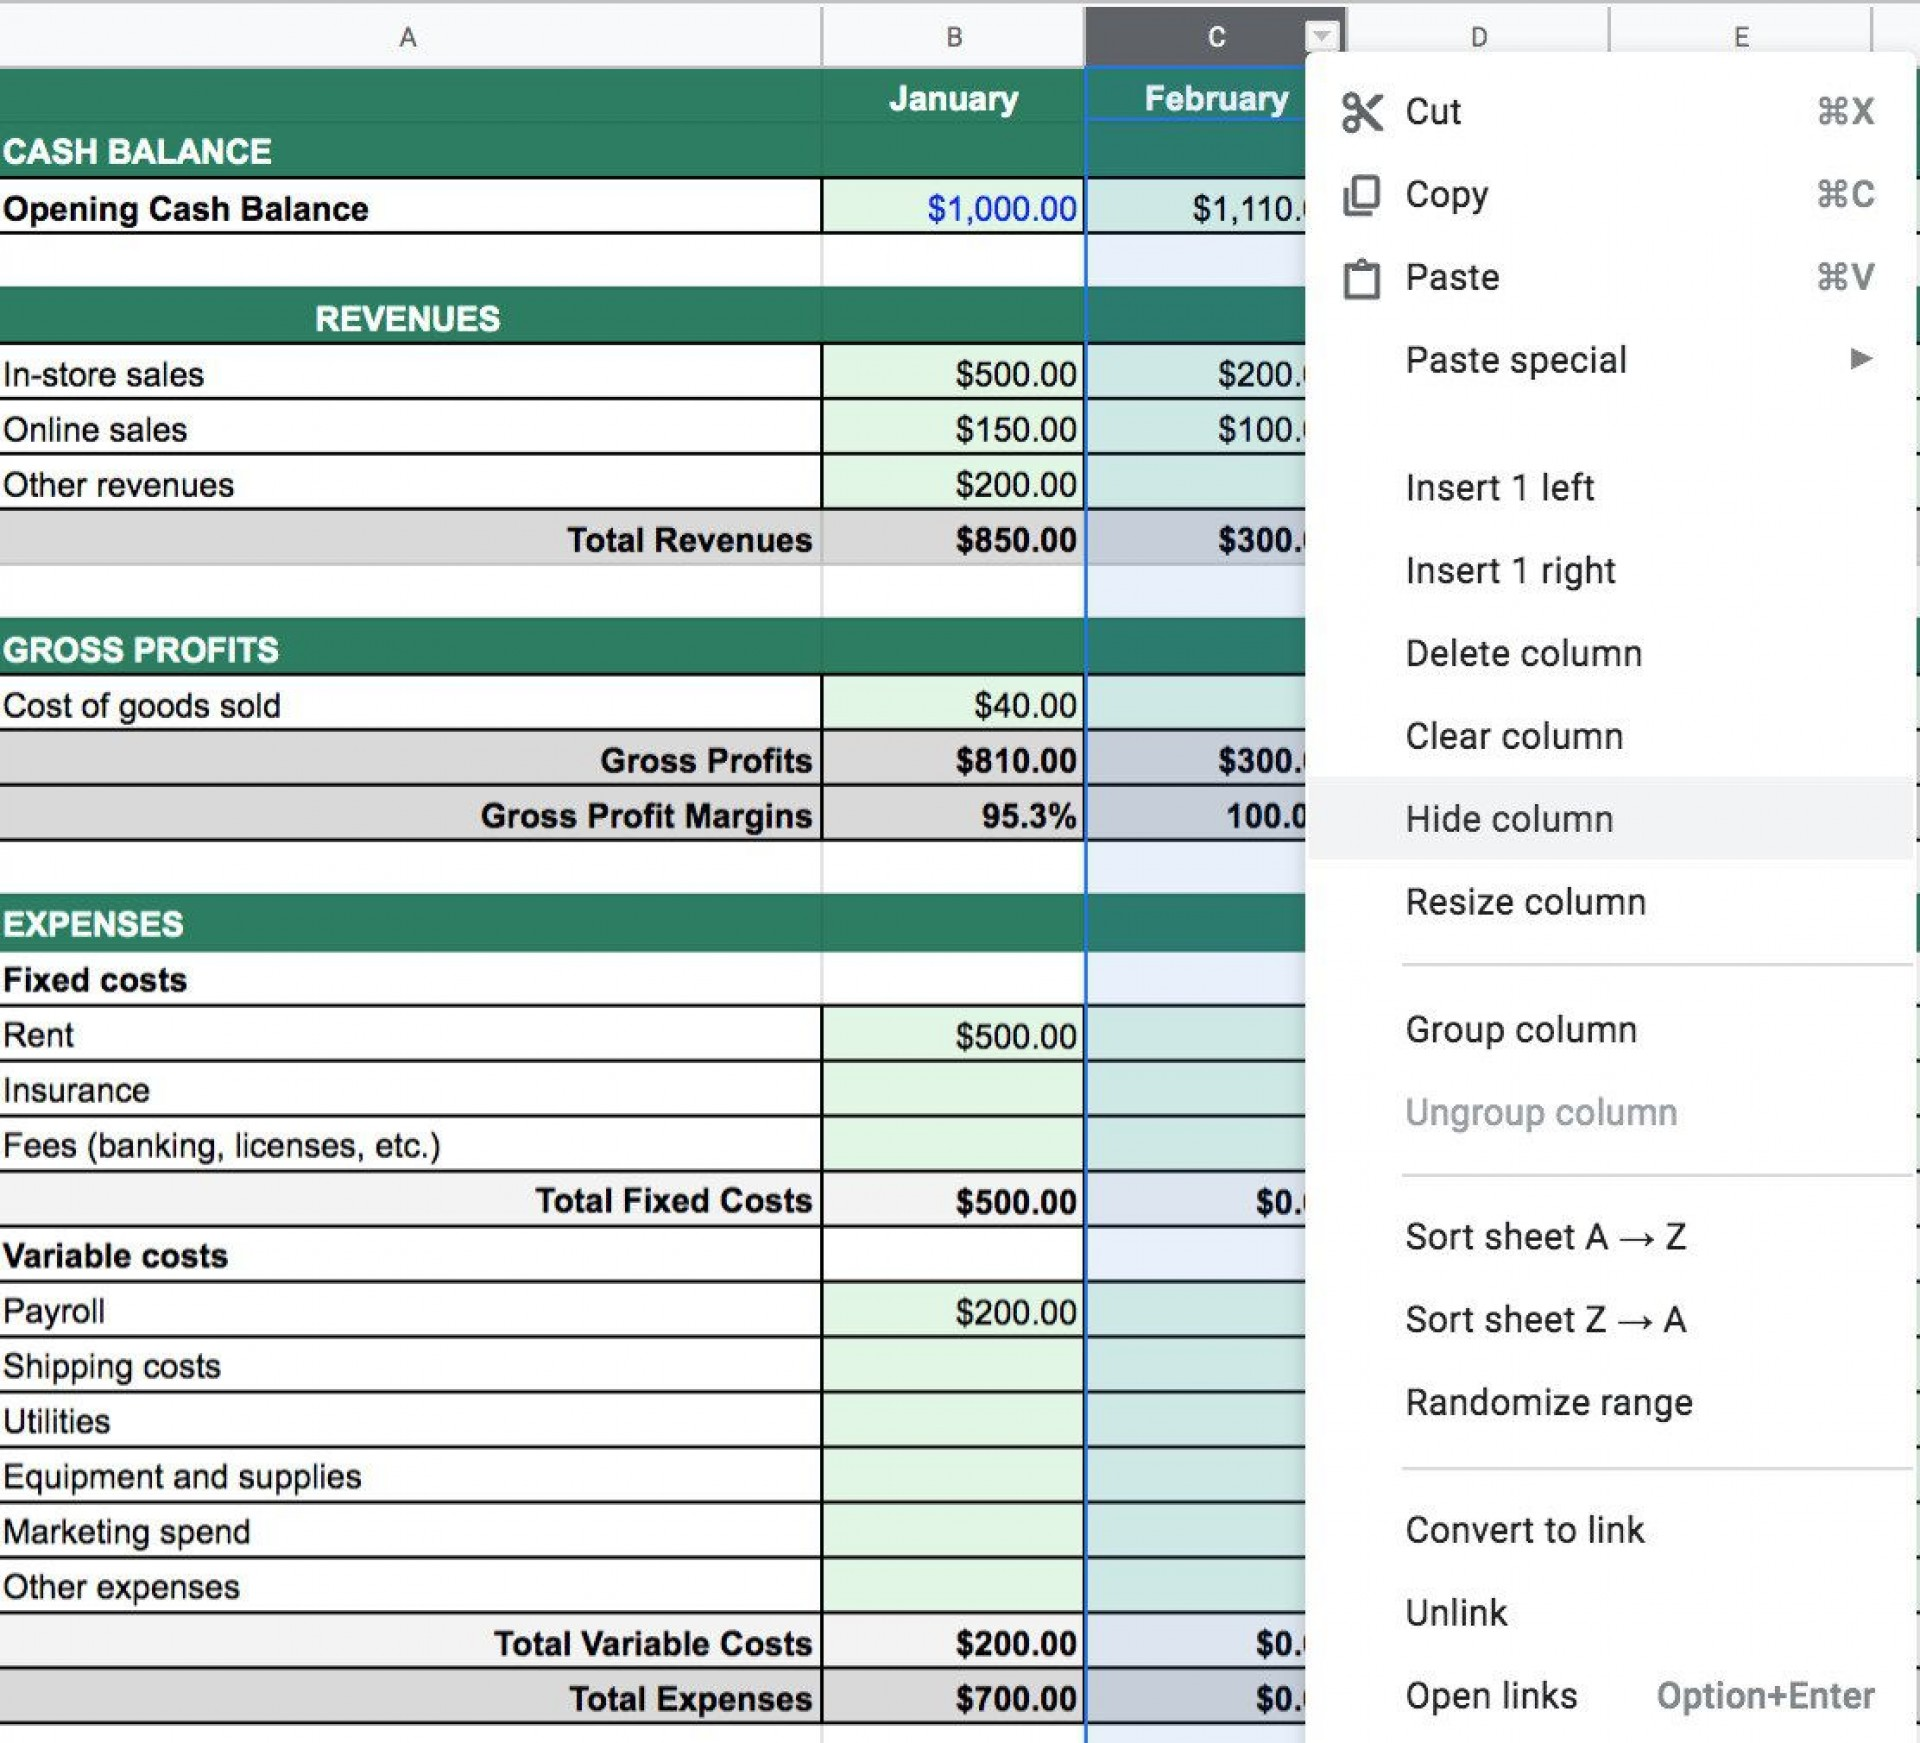 003 Incredible Cash Flow Forecast Excel Template Uk Free Photo 1920